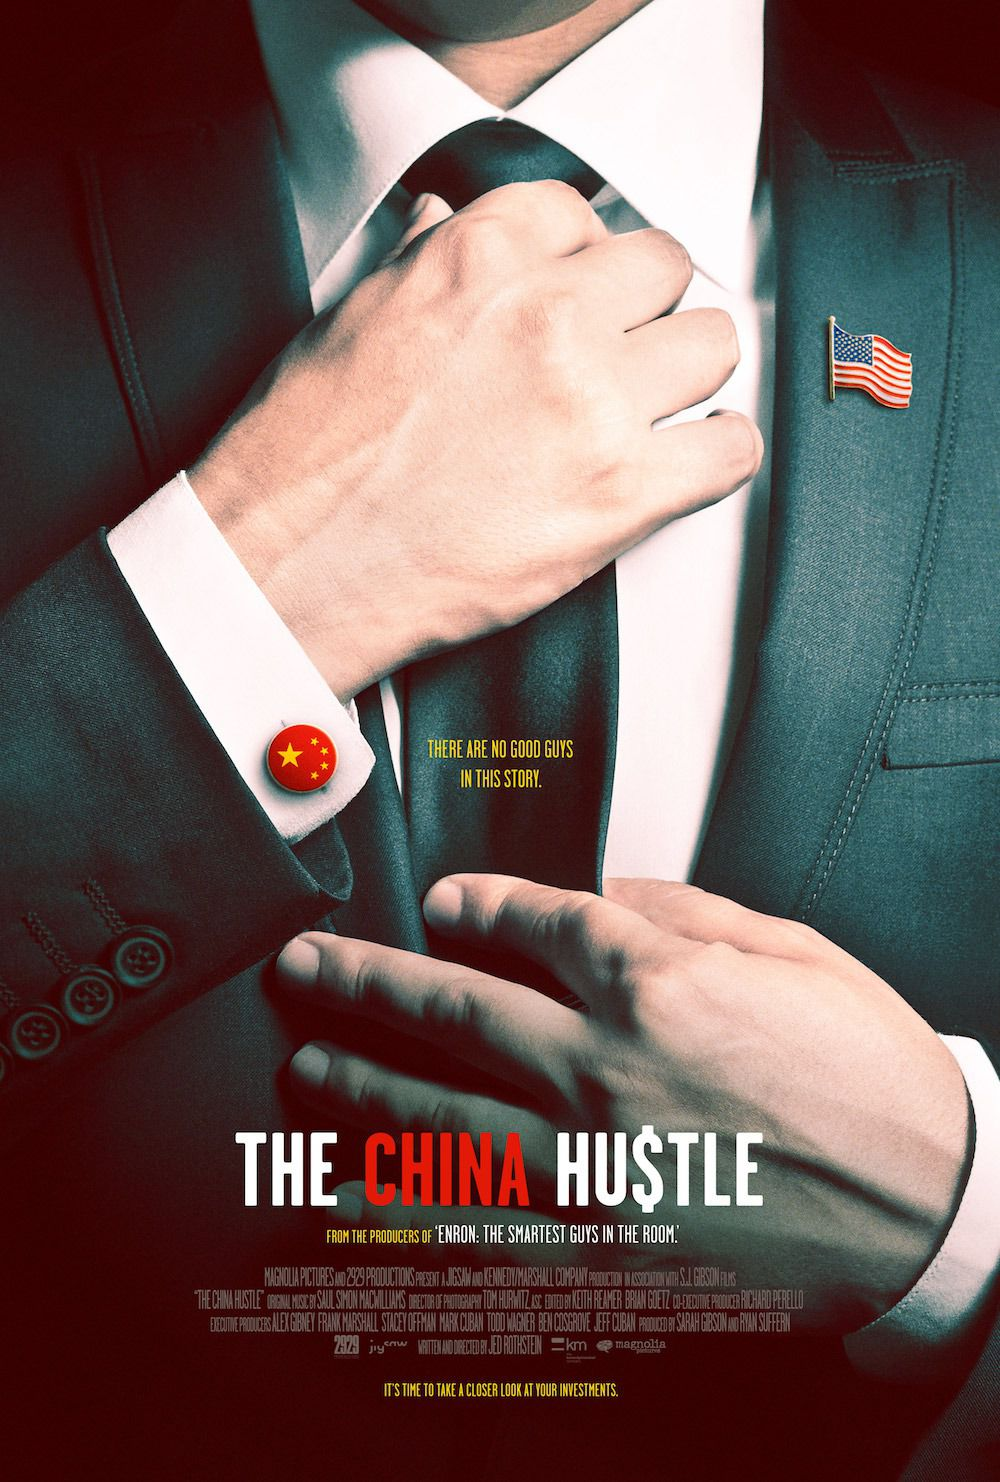 The China Hustle - film poster